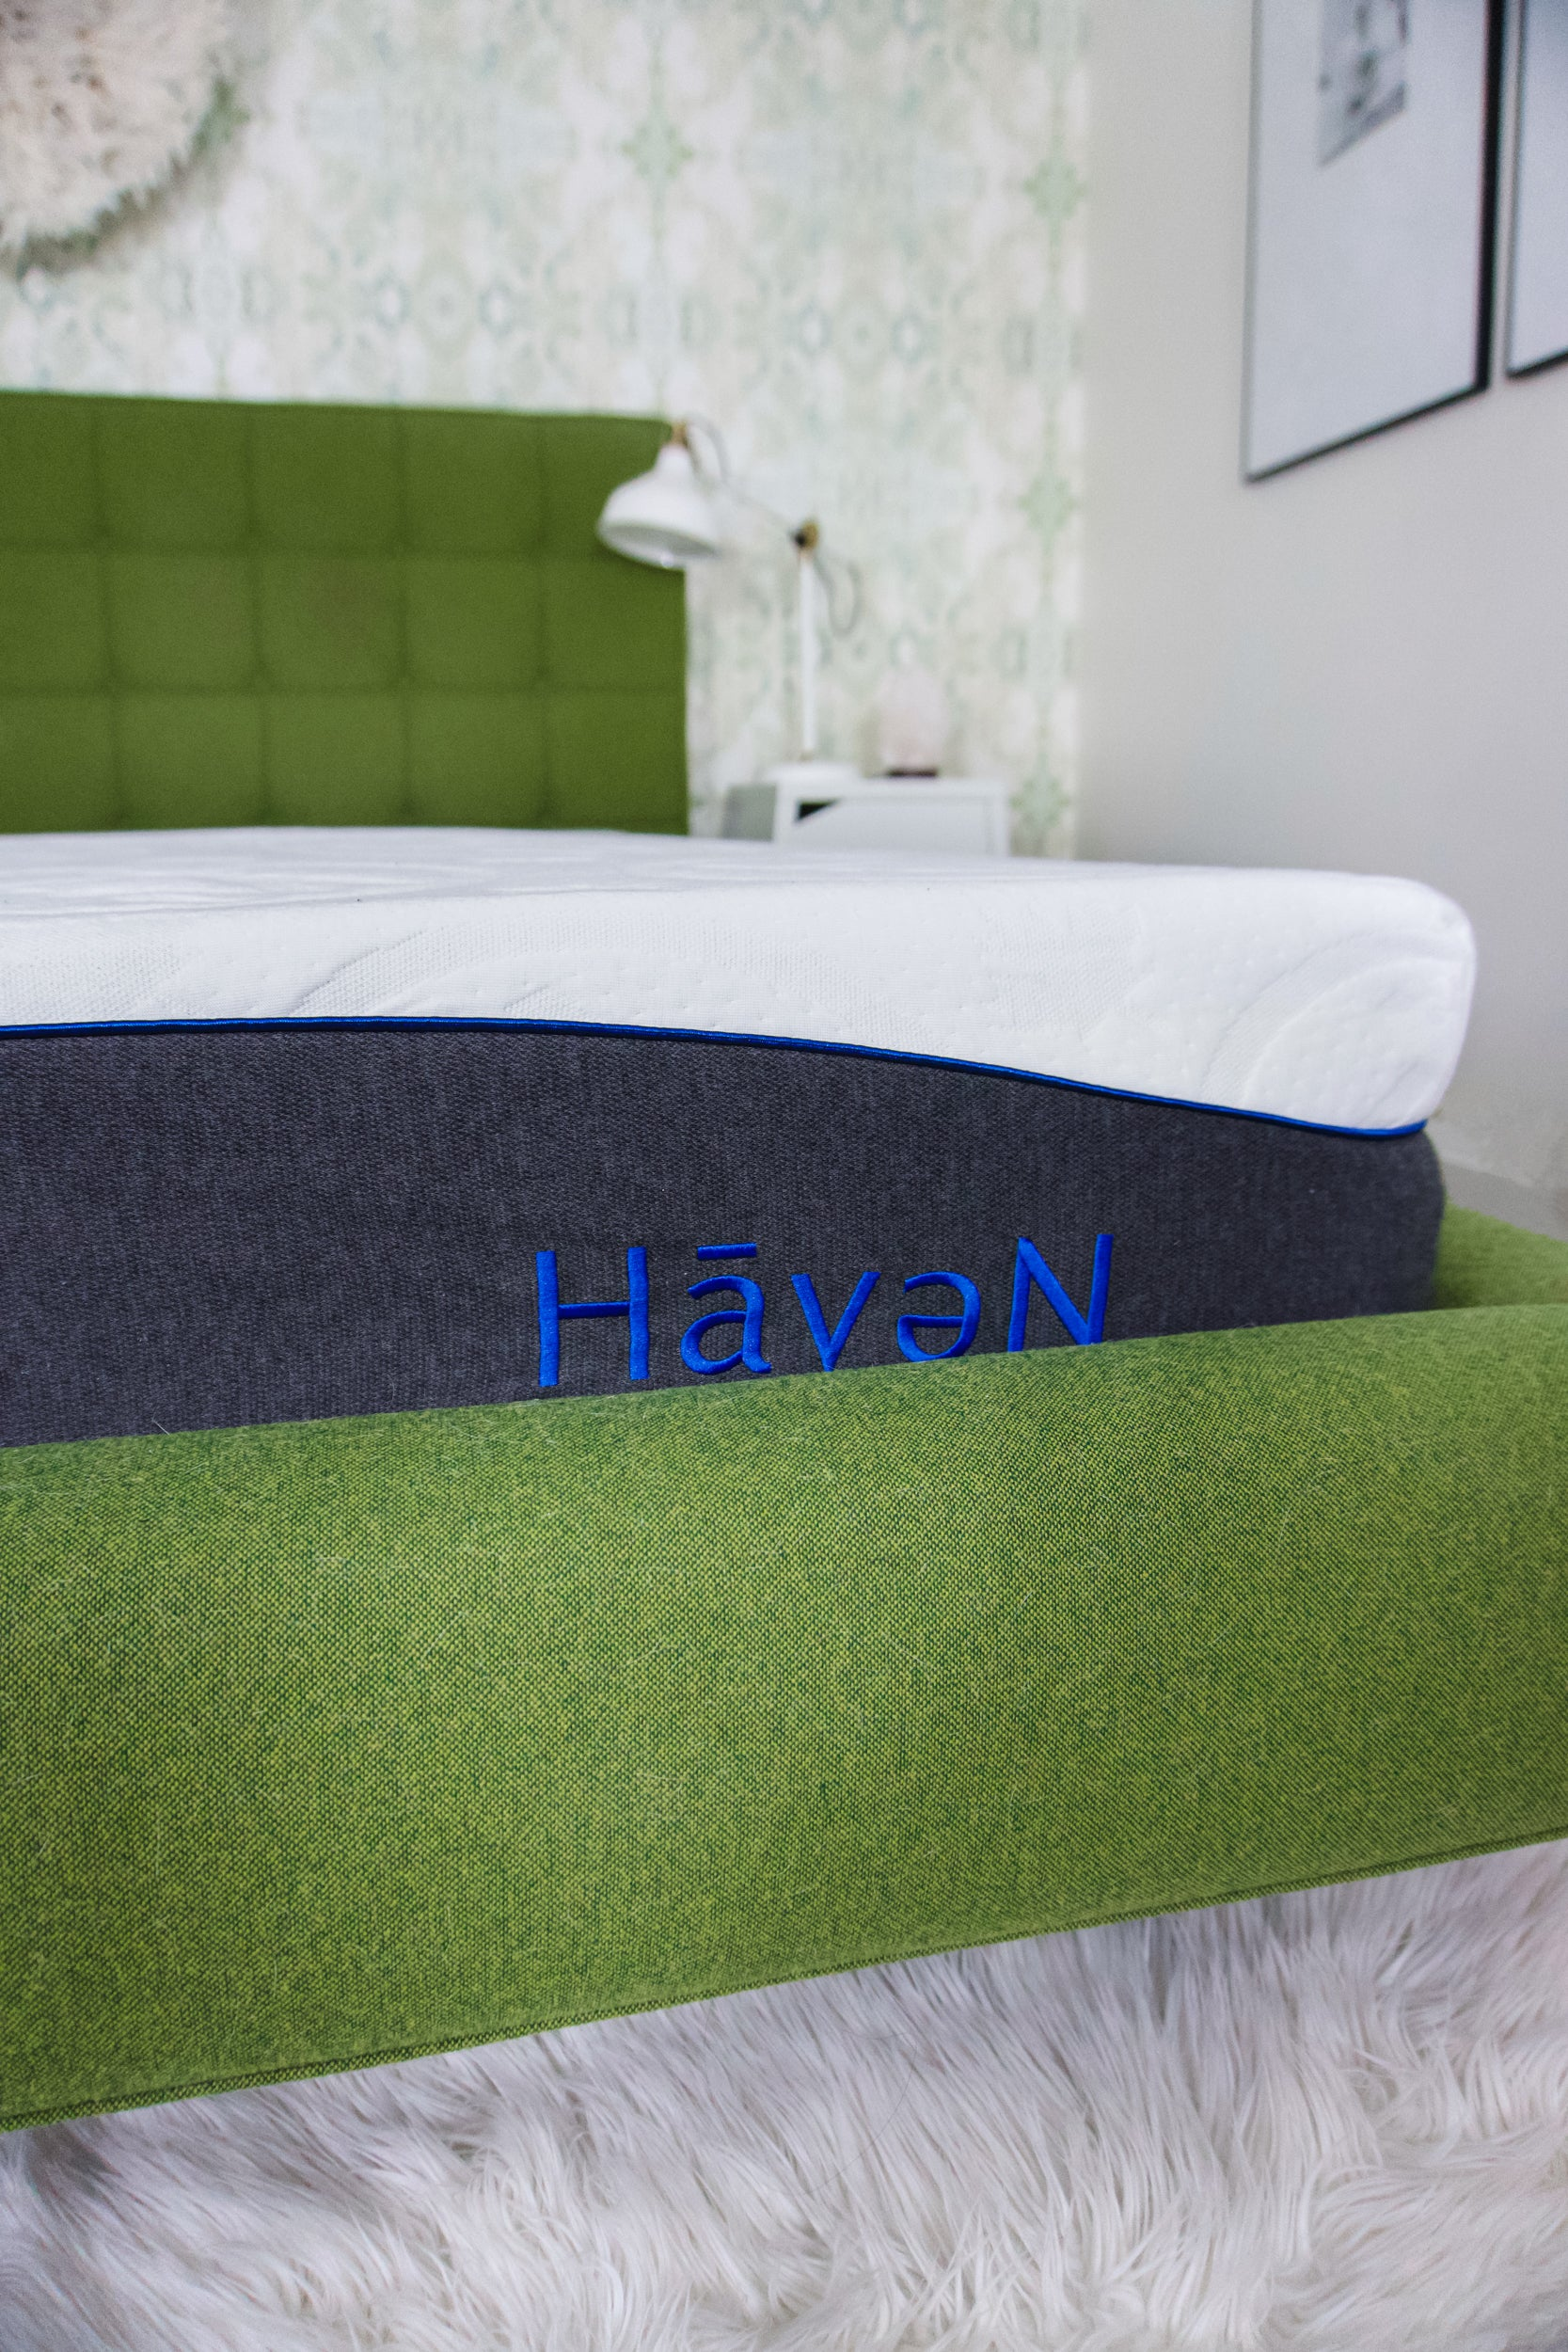 A Haven Mattress nestled in a soft green fabric-covered frame. Other design elements in the background.